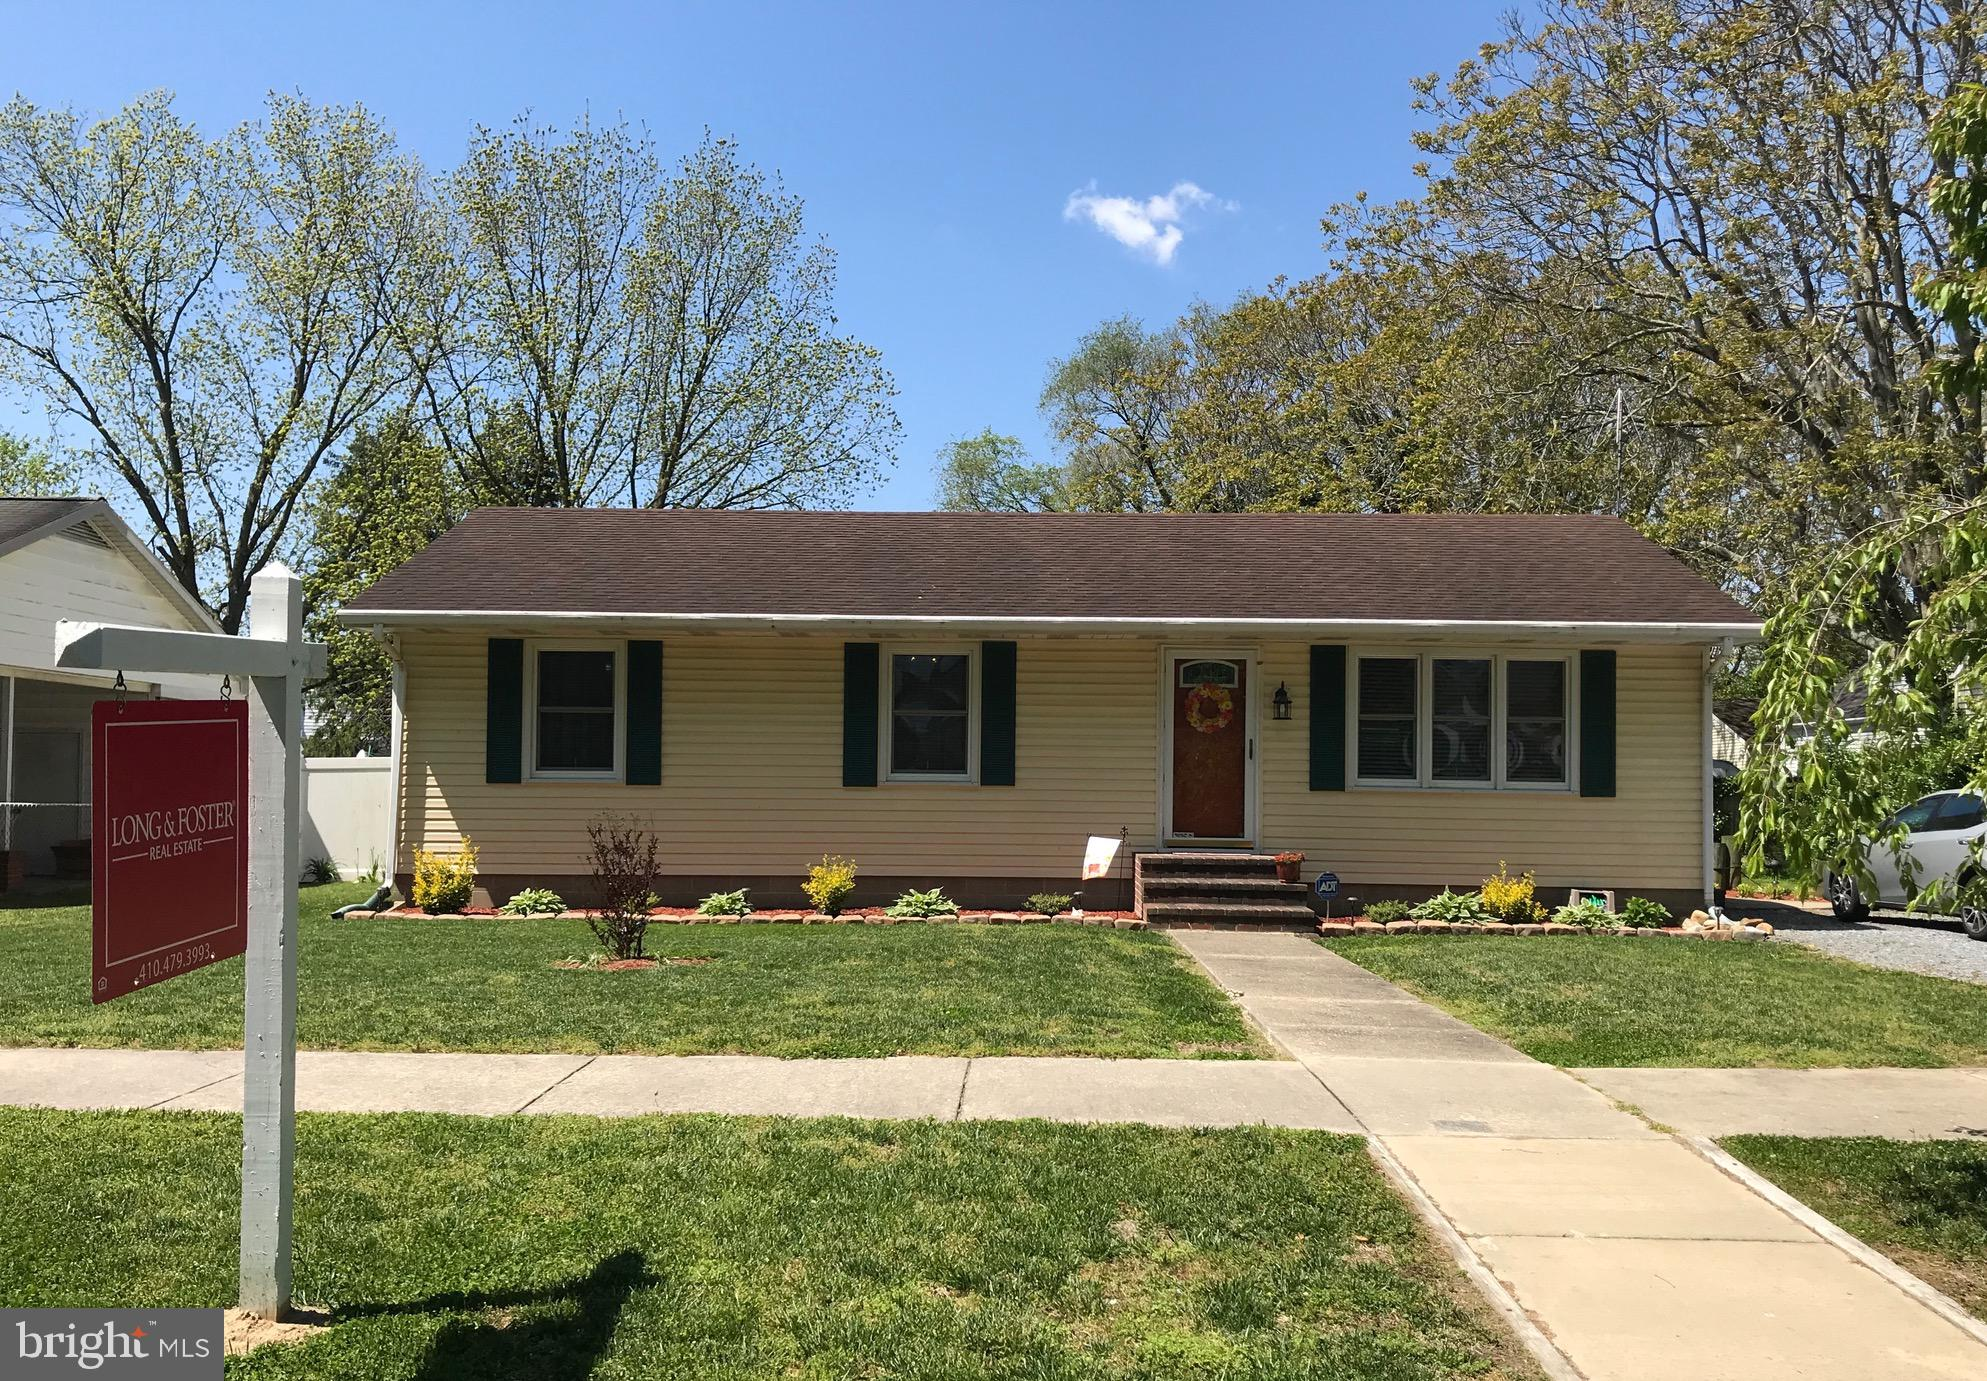 105 Maryland Avenue, Ridgely, MD 21660